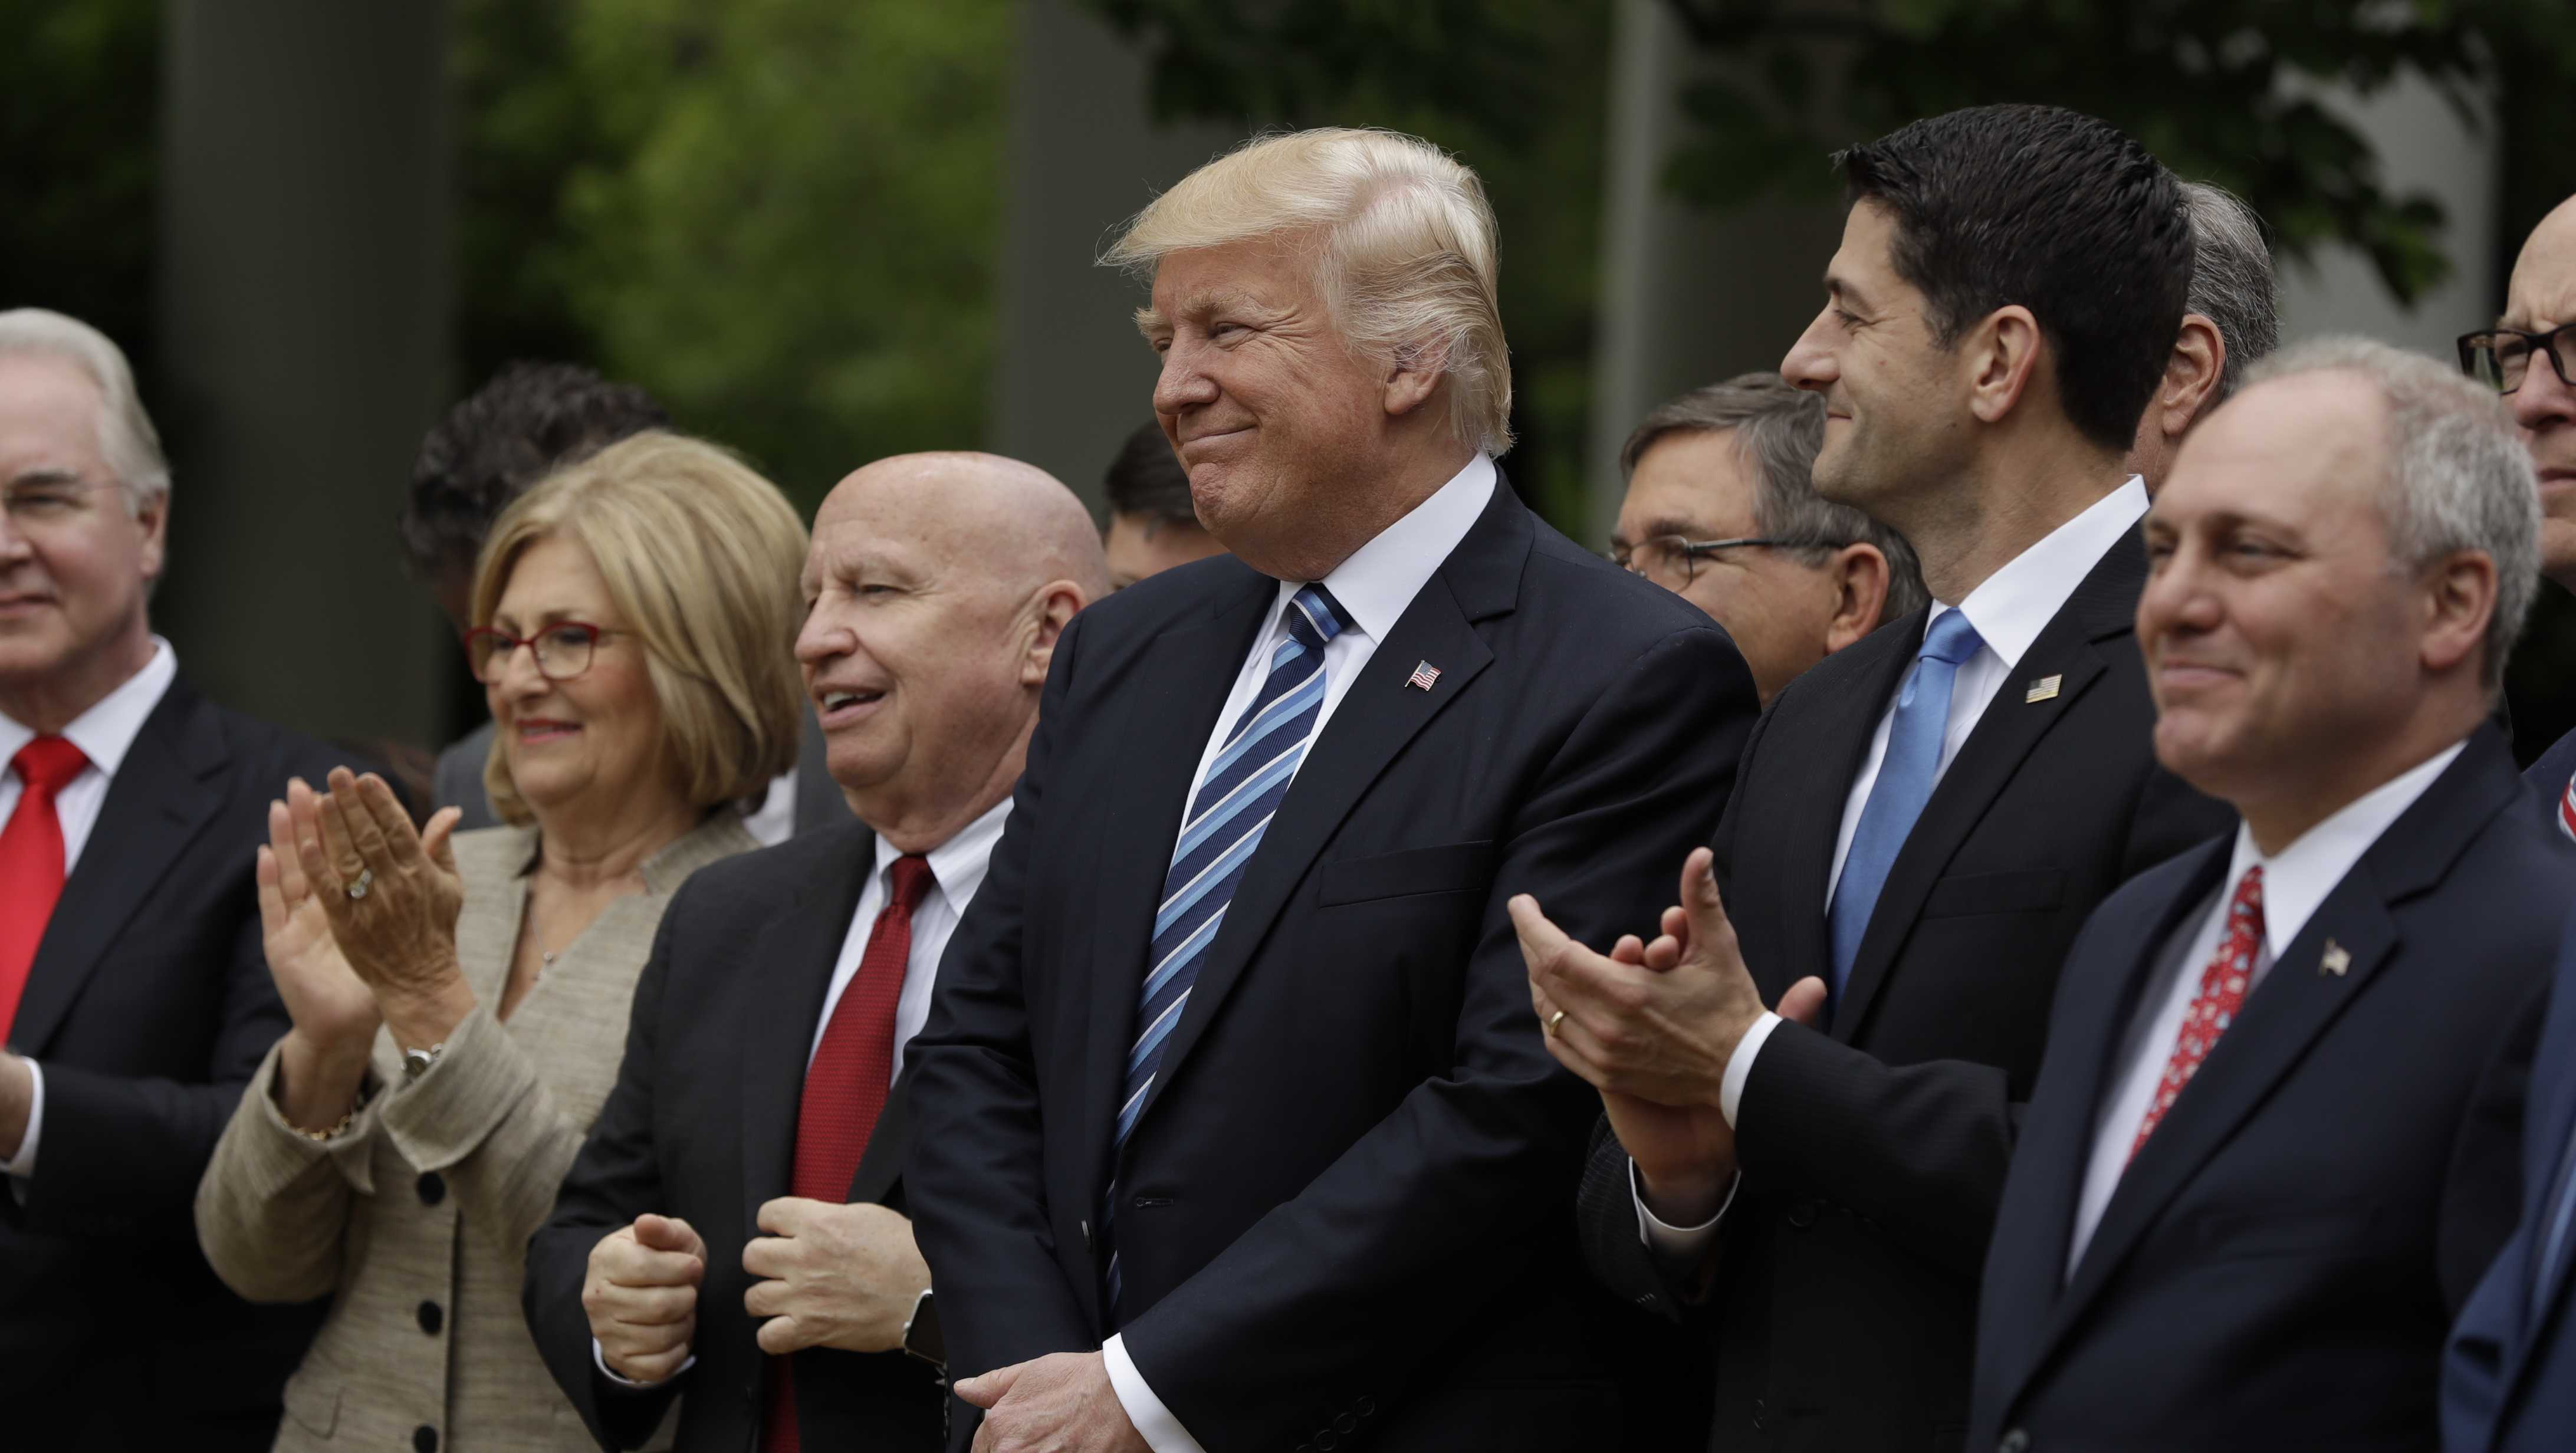 President Donald Trump, flanked by House Ways and Means Committee Chairman Rep. Kevin Brady, R-Texas, and House Speaker Paul Ryan of Wis., are seen in the Rose Garden of the White House in Washington, Thursday, May 4, 2017, after the House pushed through a health care bill.